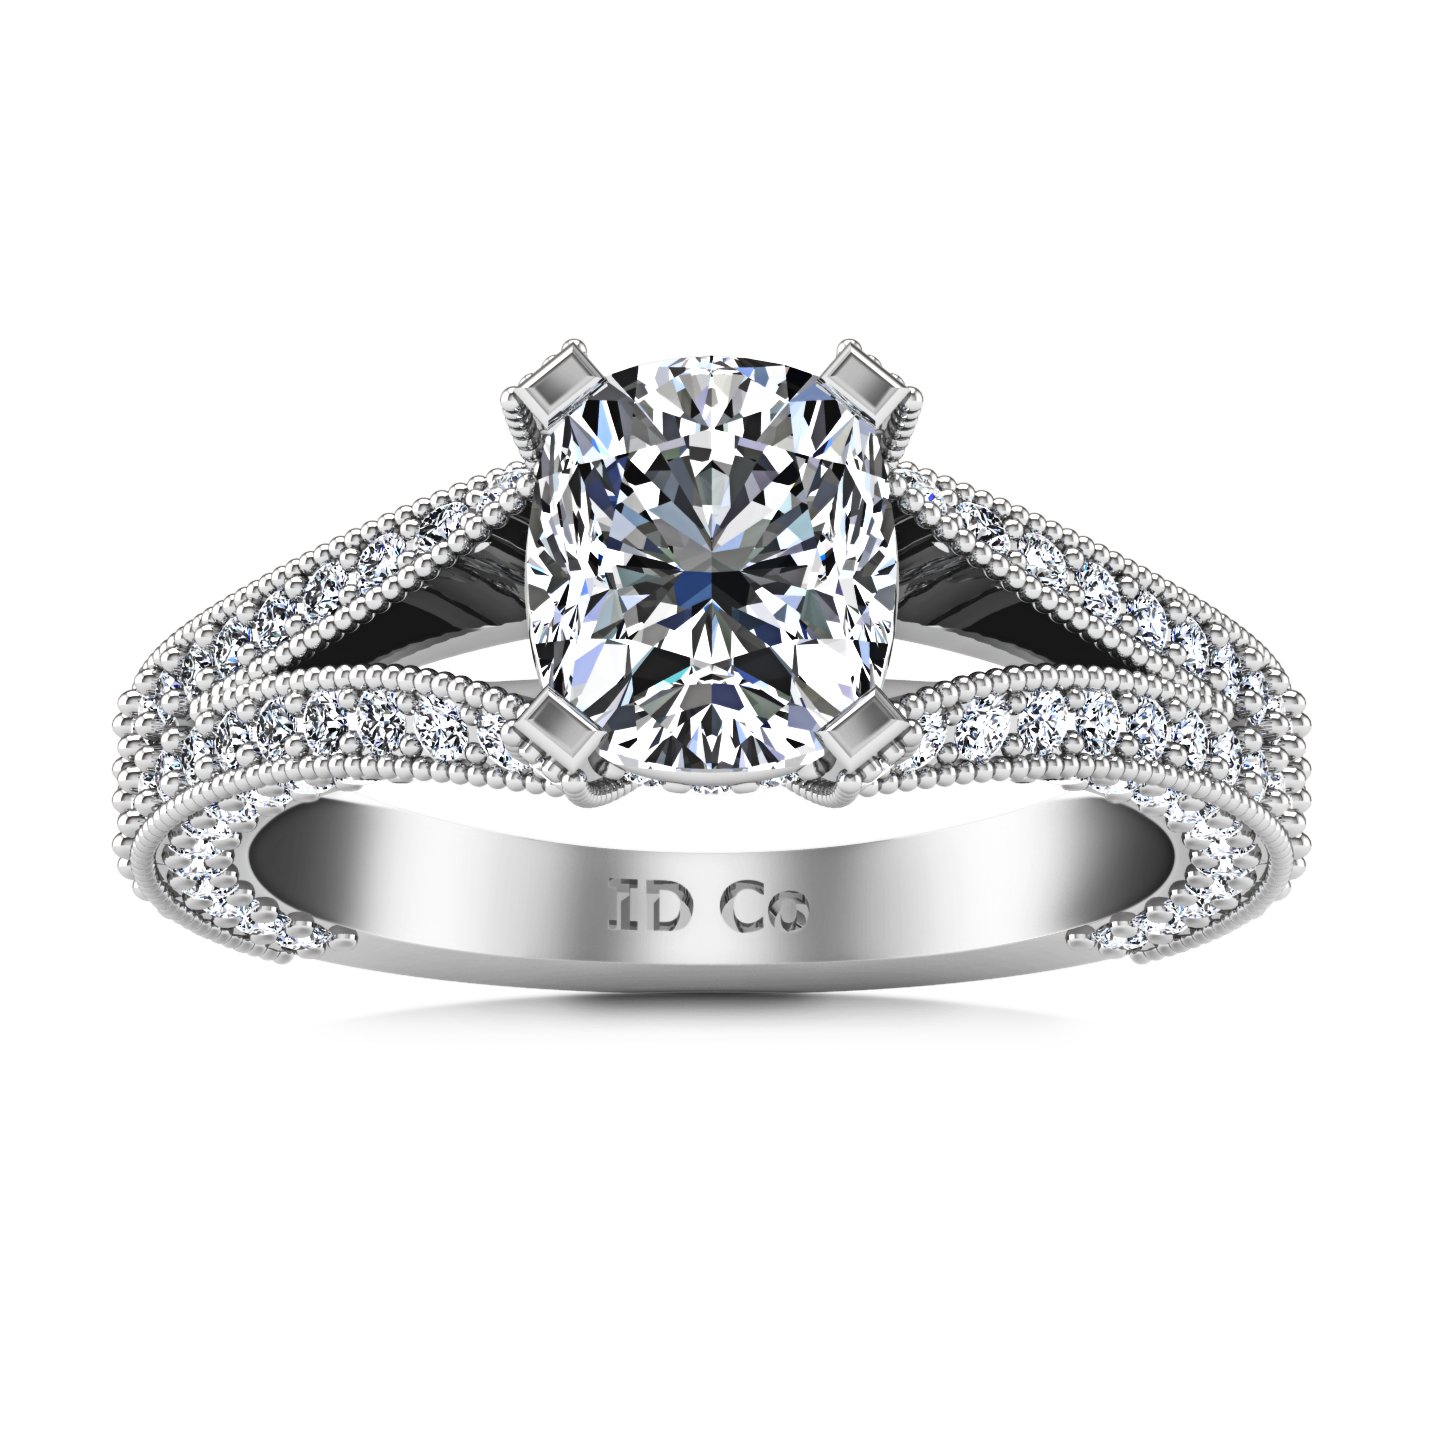 fr jewellery forever engagement brilliant mirabess cushion halo rings ring products cut moissanite